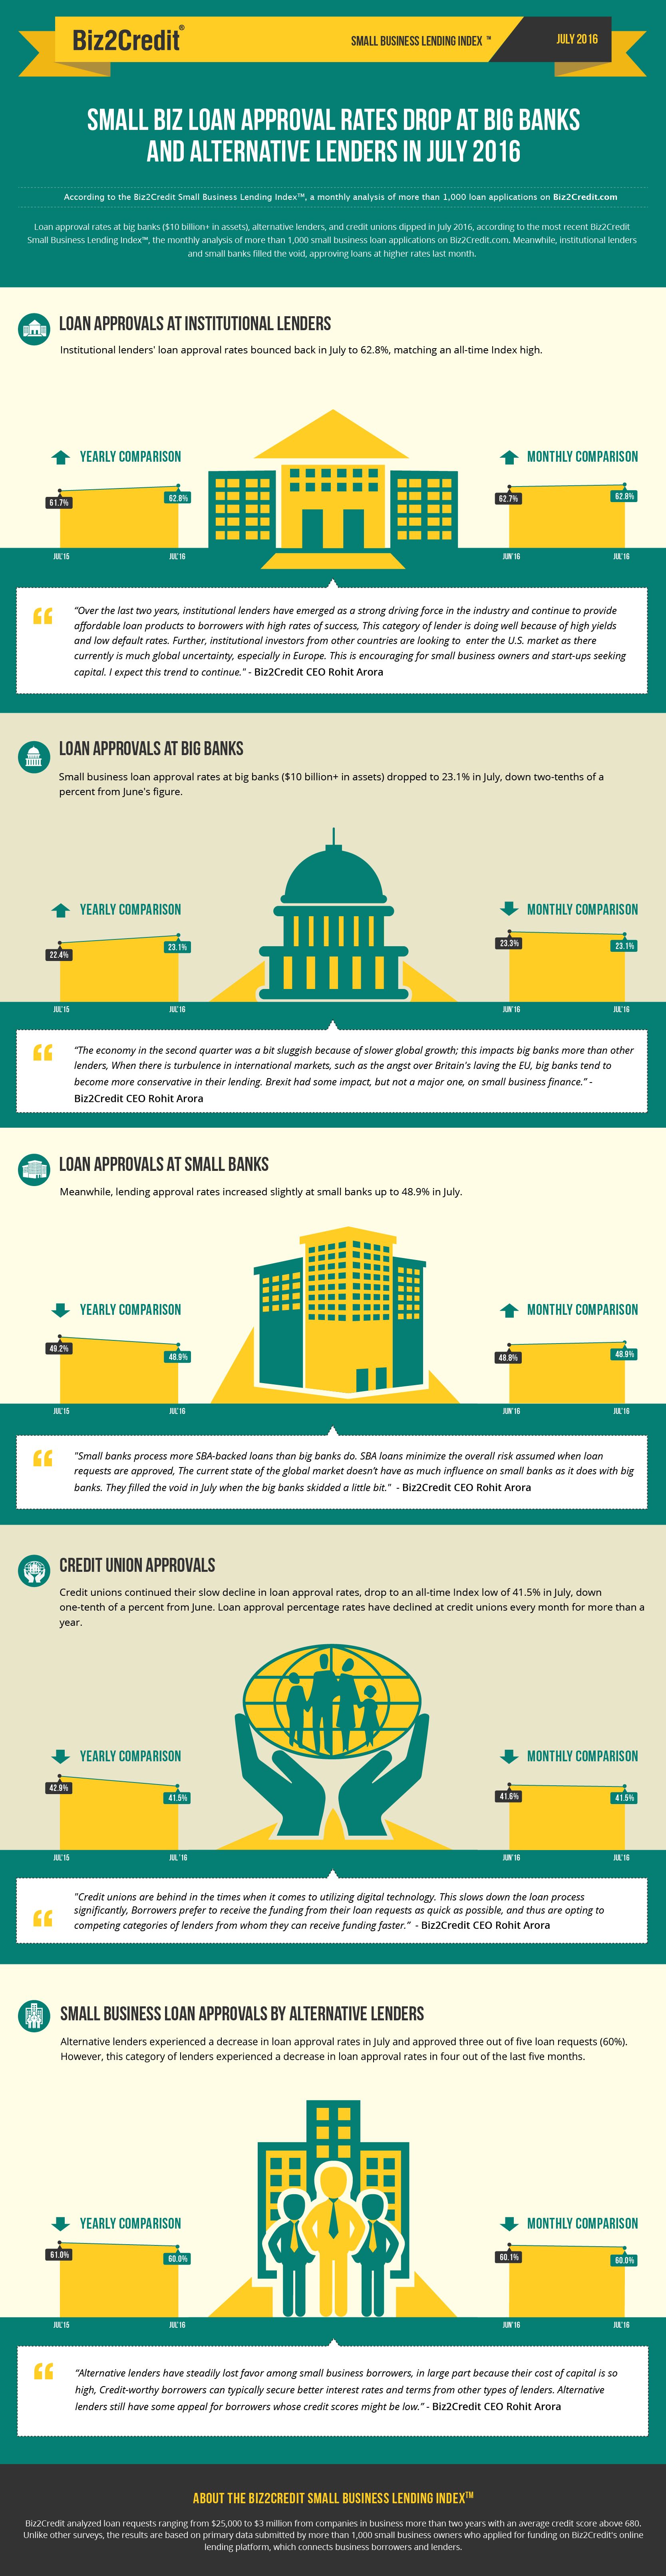 july16 Lending Index Infographic